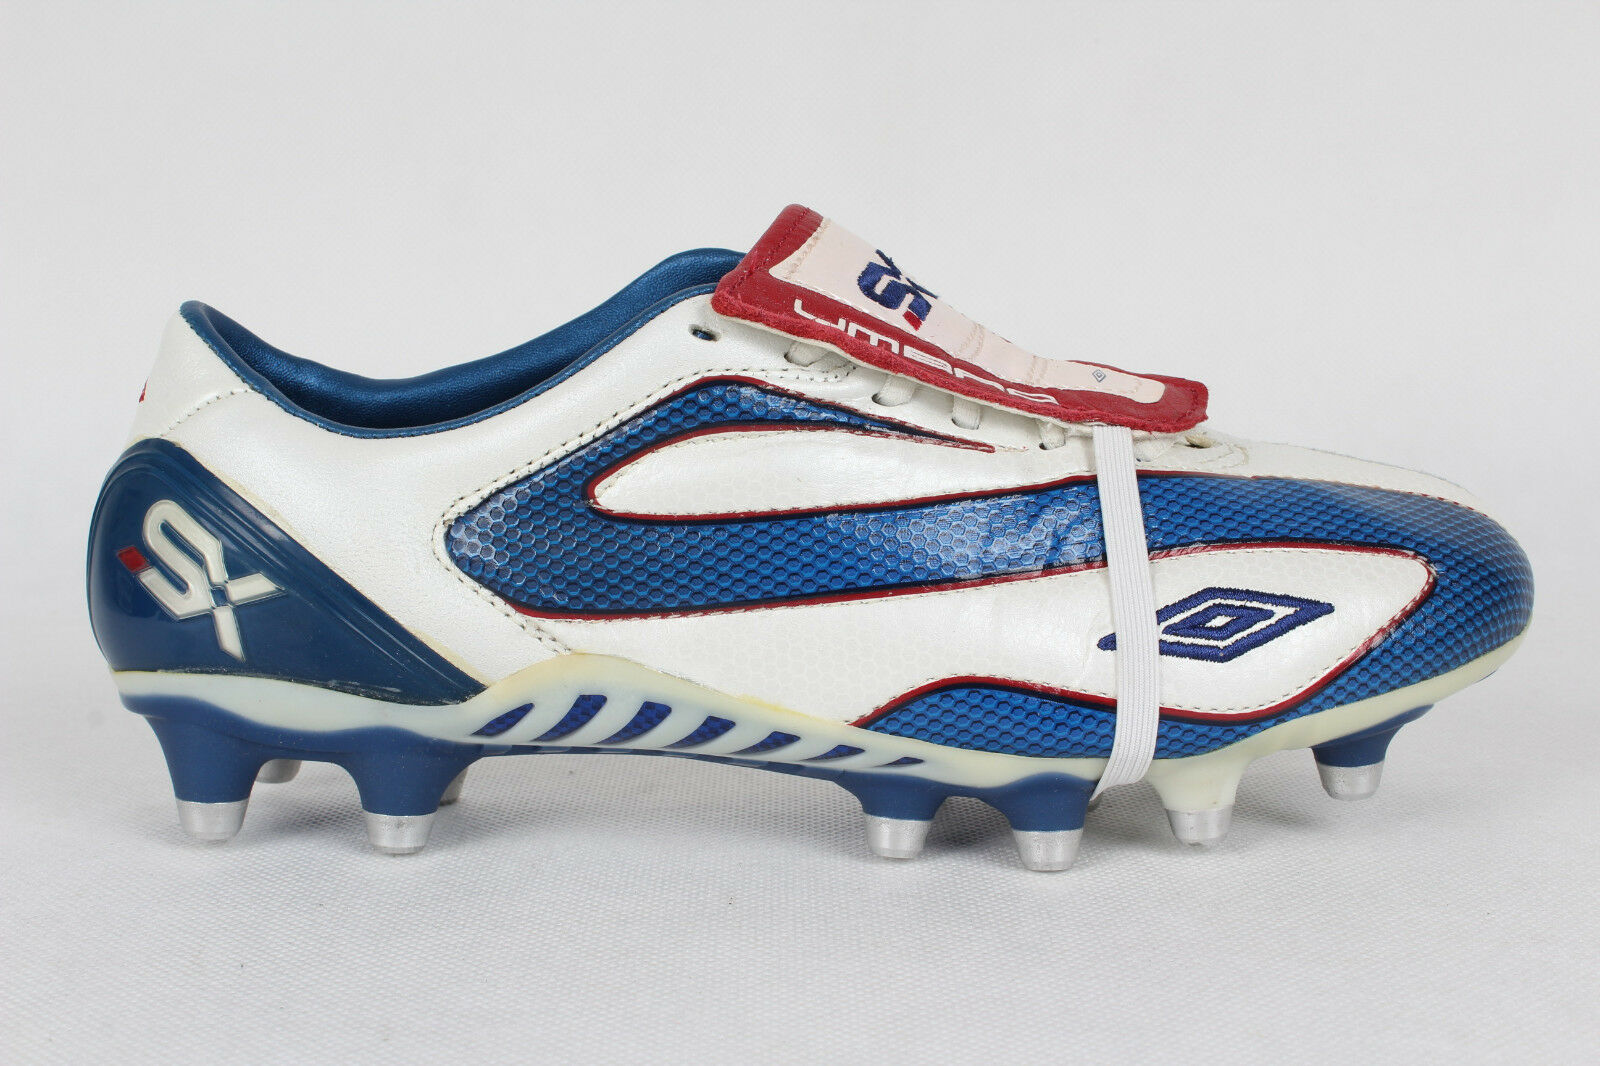 Umbro SPECIALI SX-FLARE-A HG METAL Football Stiefel Soccer Cleats (RARE) SIZE UK6